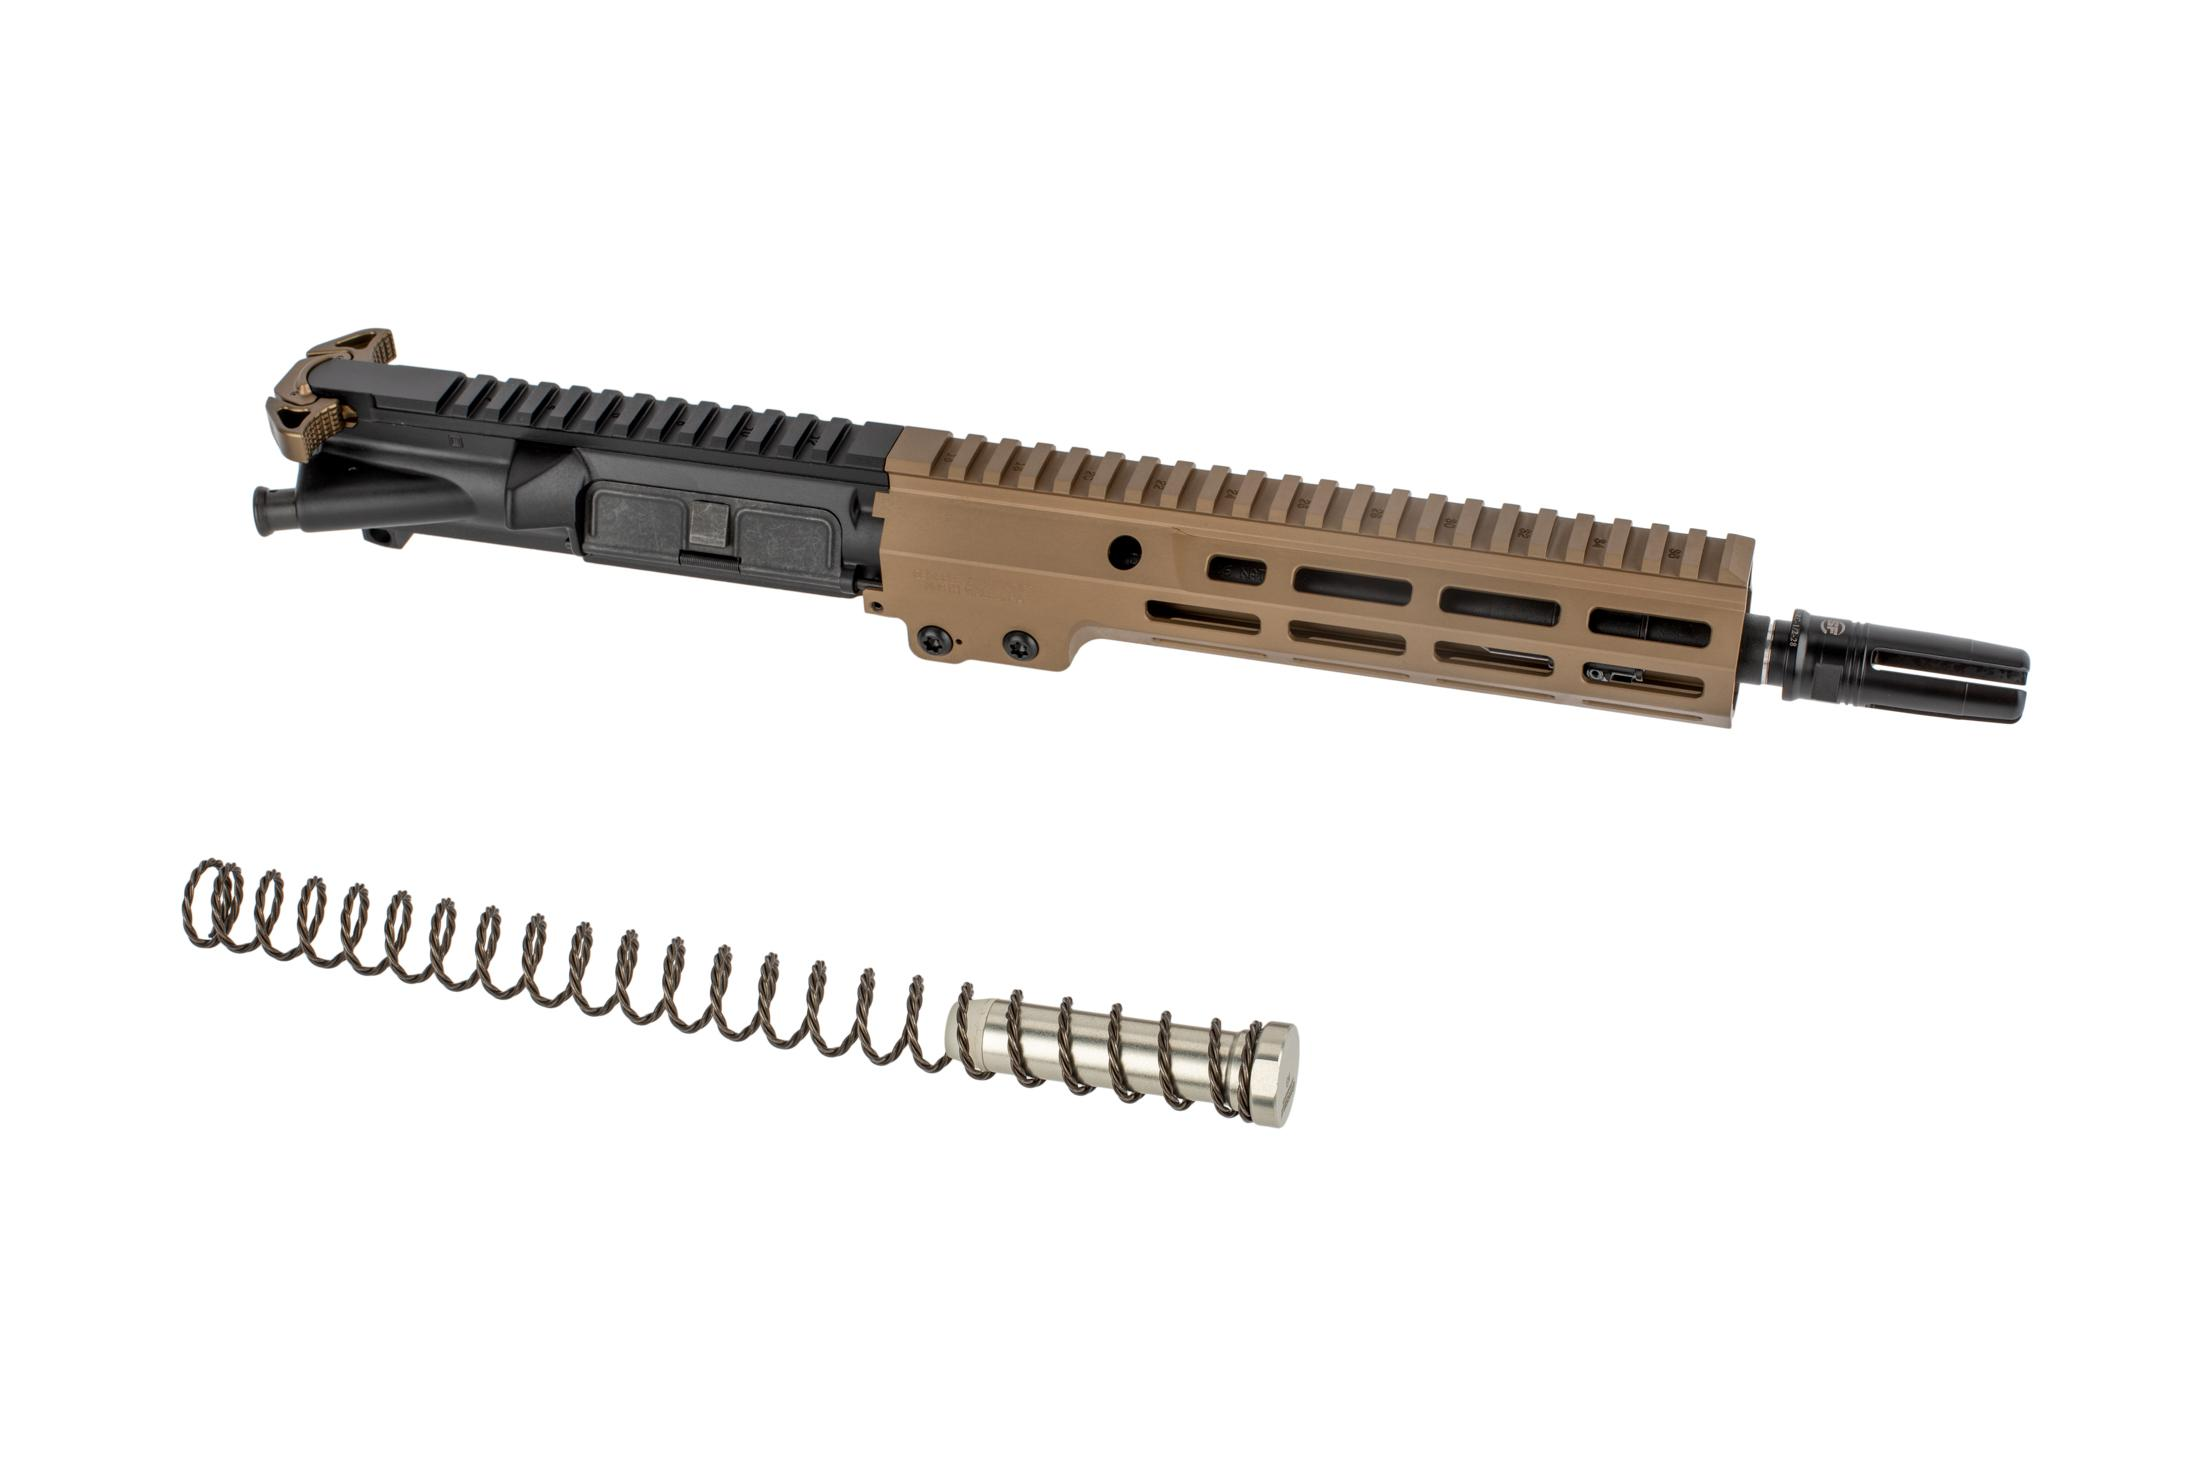 The Geissele USASOC improved AR15 complete upper group comes with a super 42 braided buffer spring and weightThe Geissele USASOC improved AR15 complete upper group comes with a super 42 braided buffe